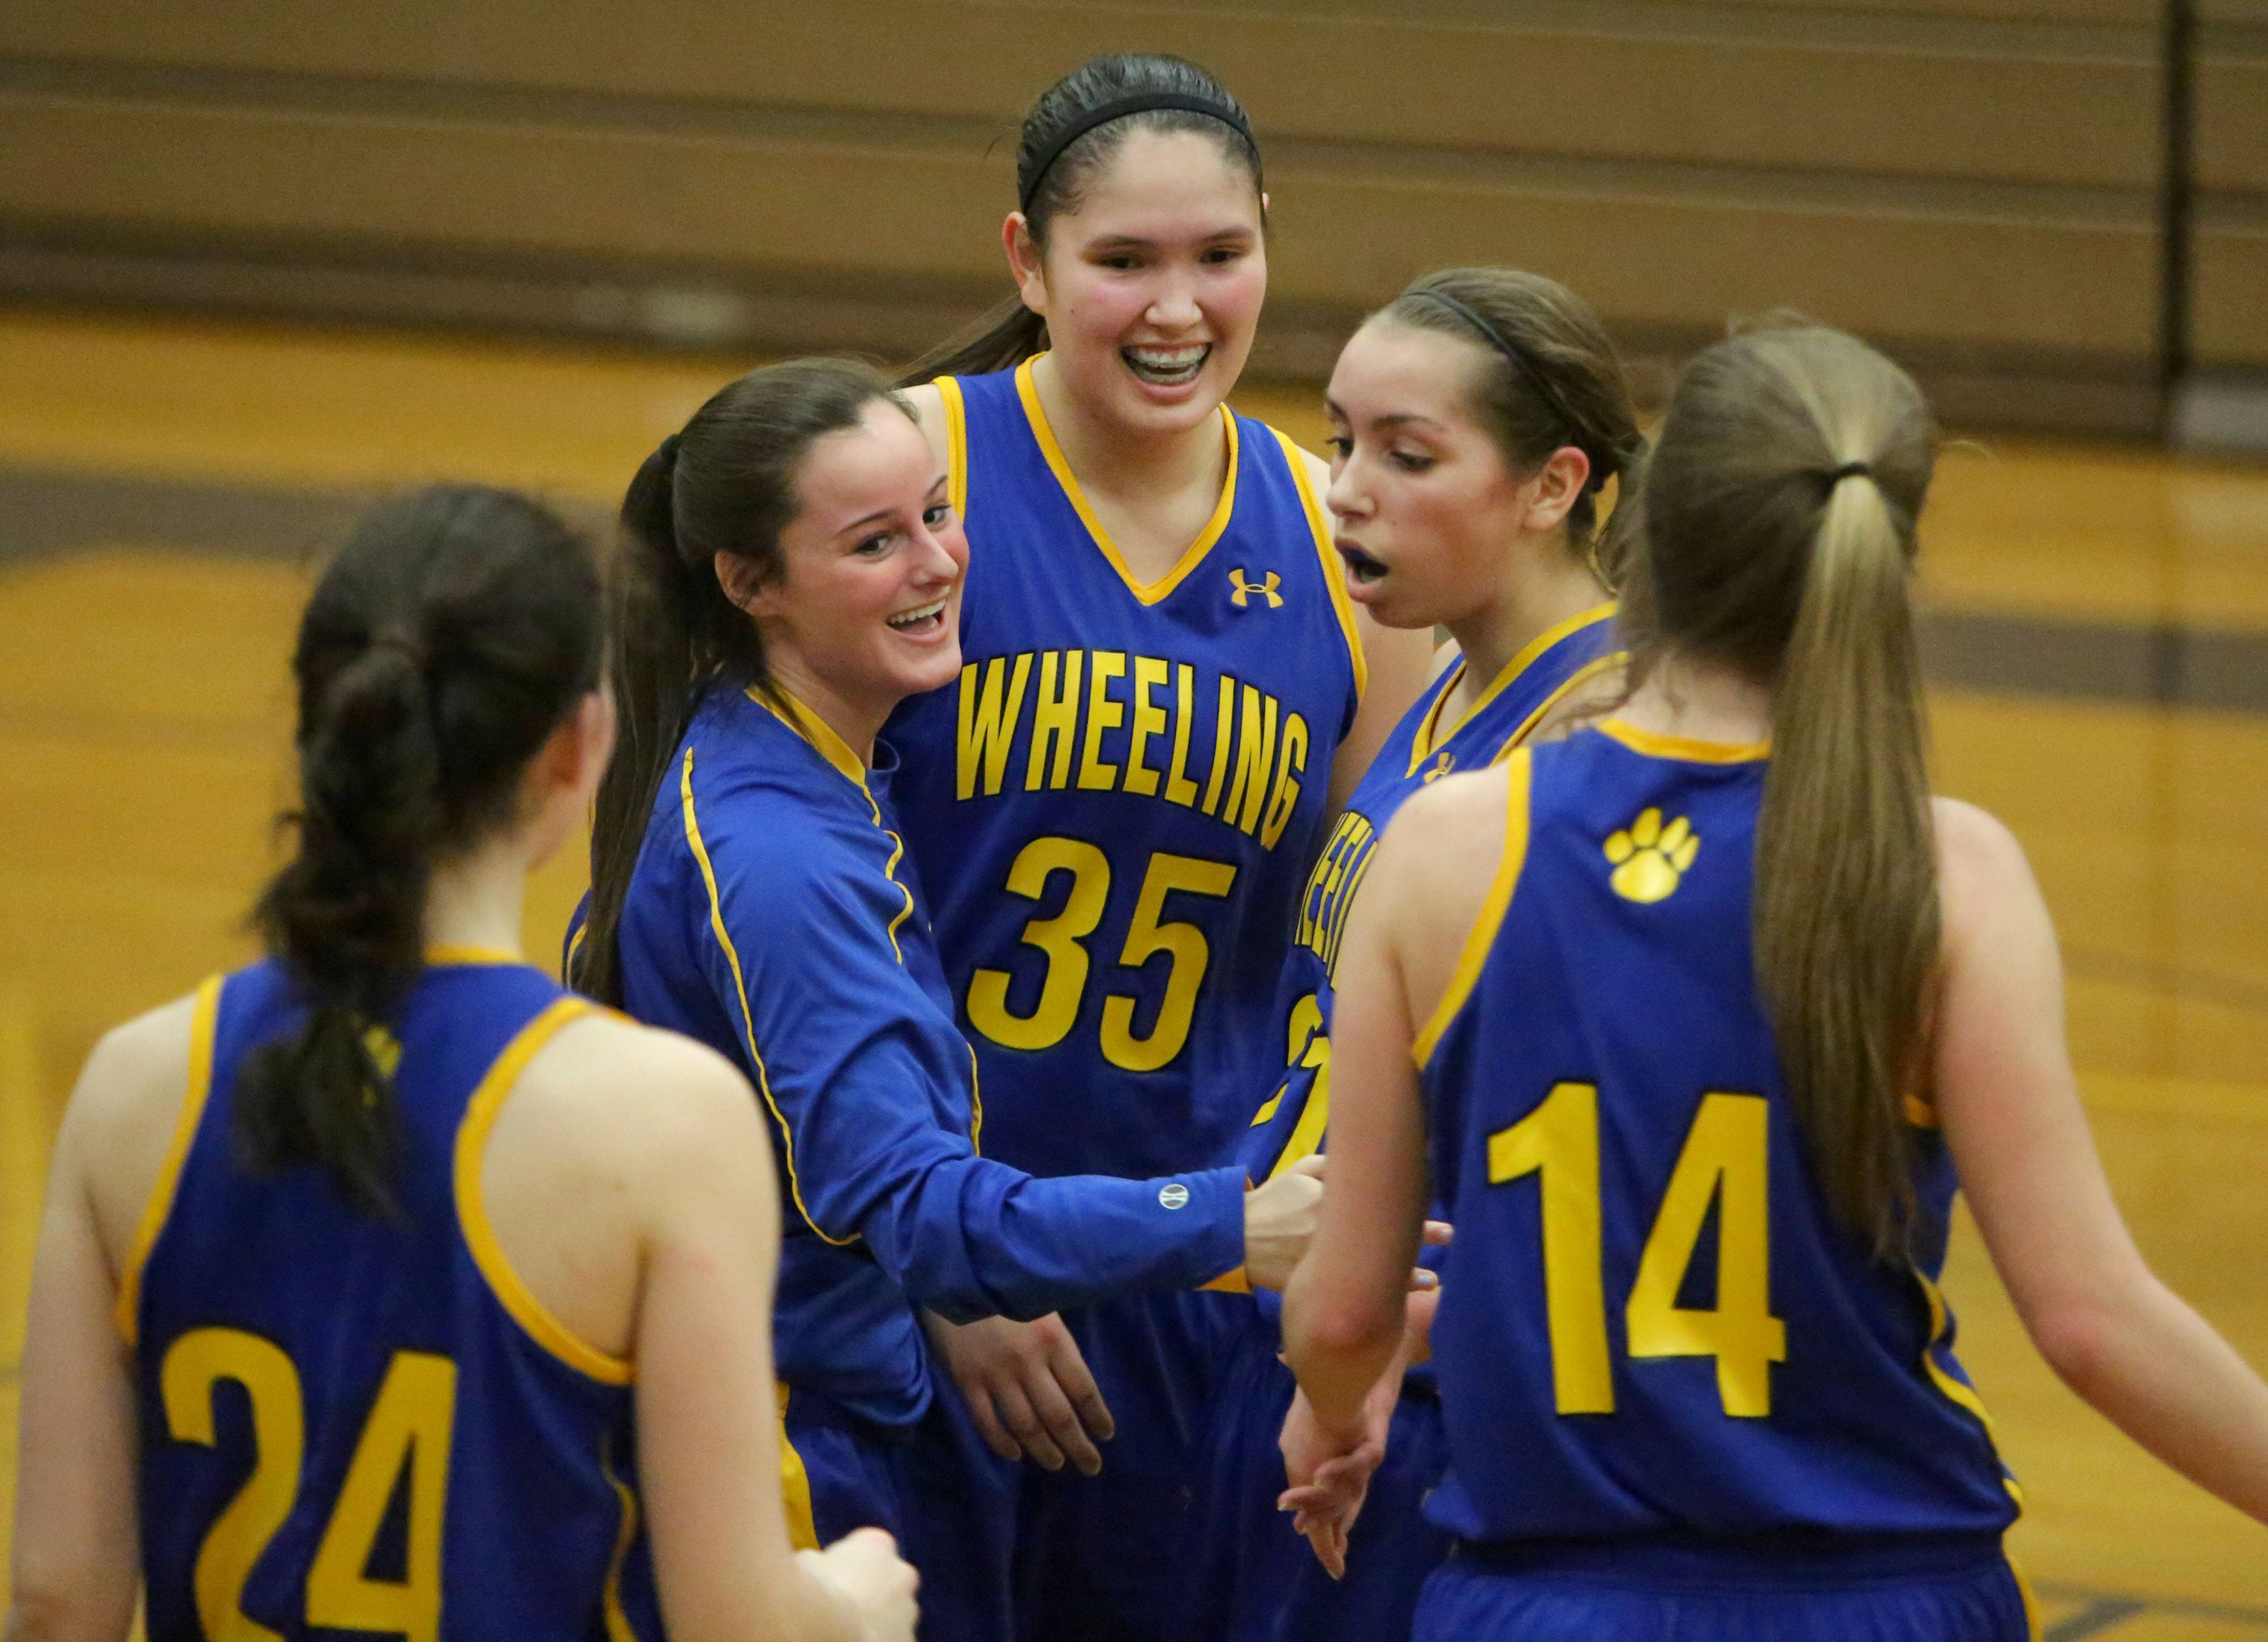 Wheeling teammates celebrate after beating Stevenson .